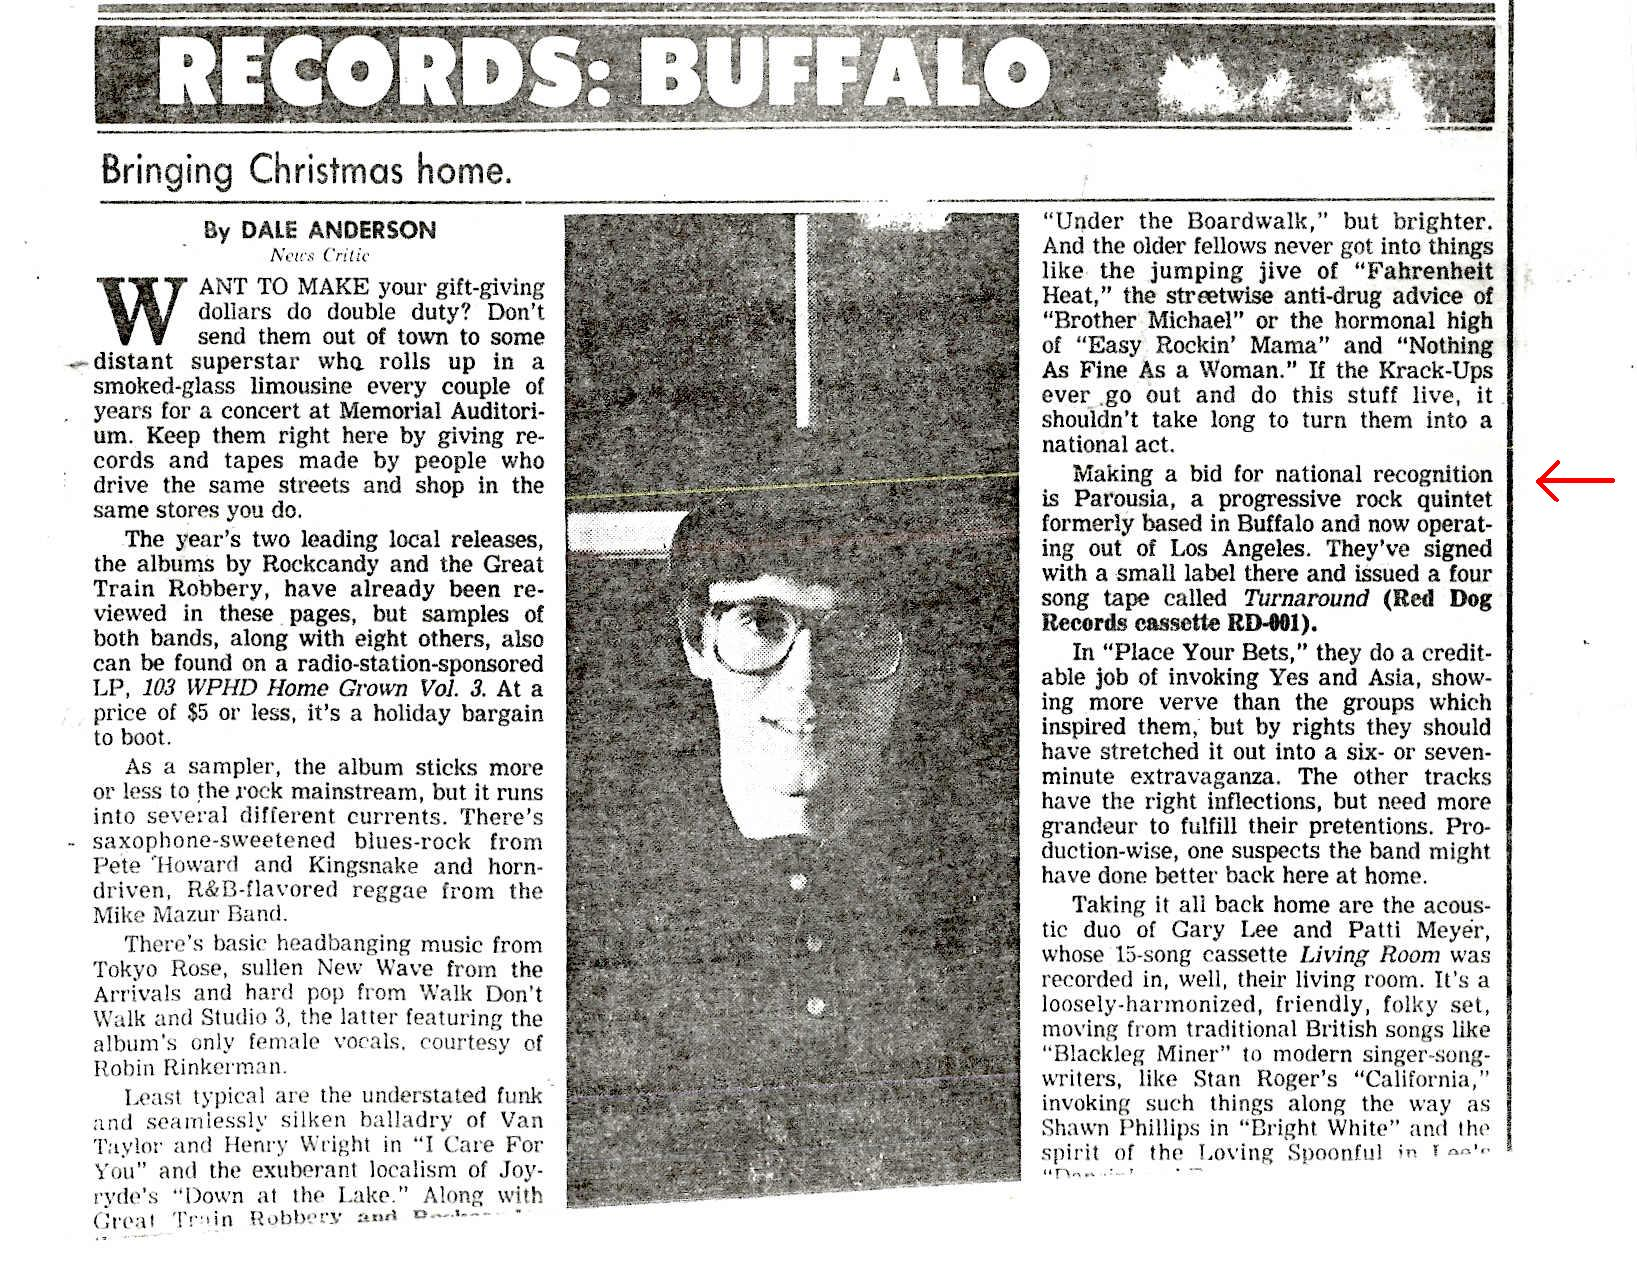 Buffalo News article by Dale Anderson Dec. 1987